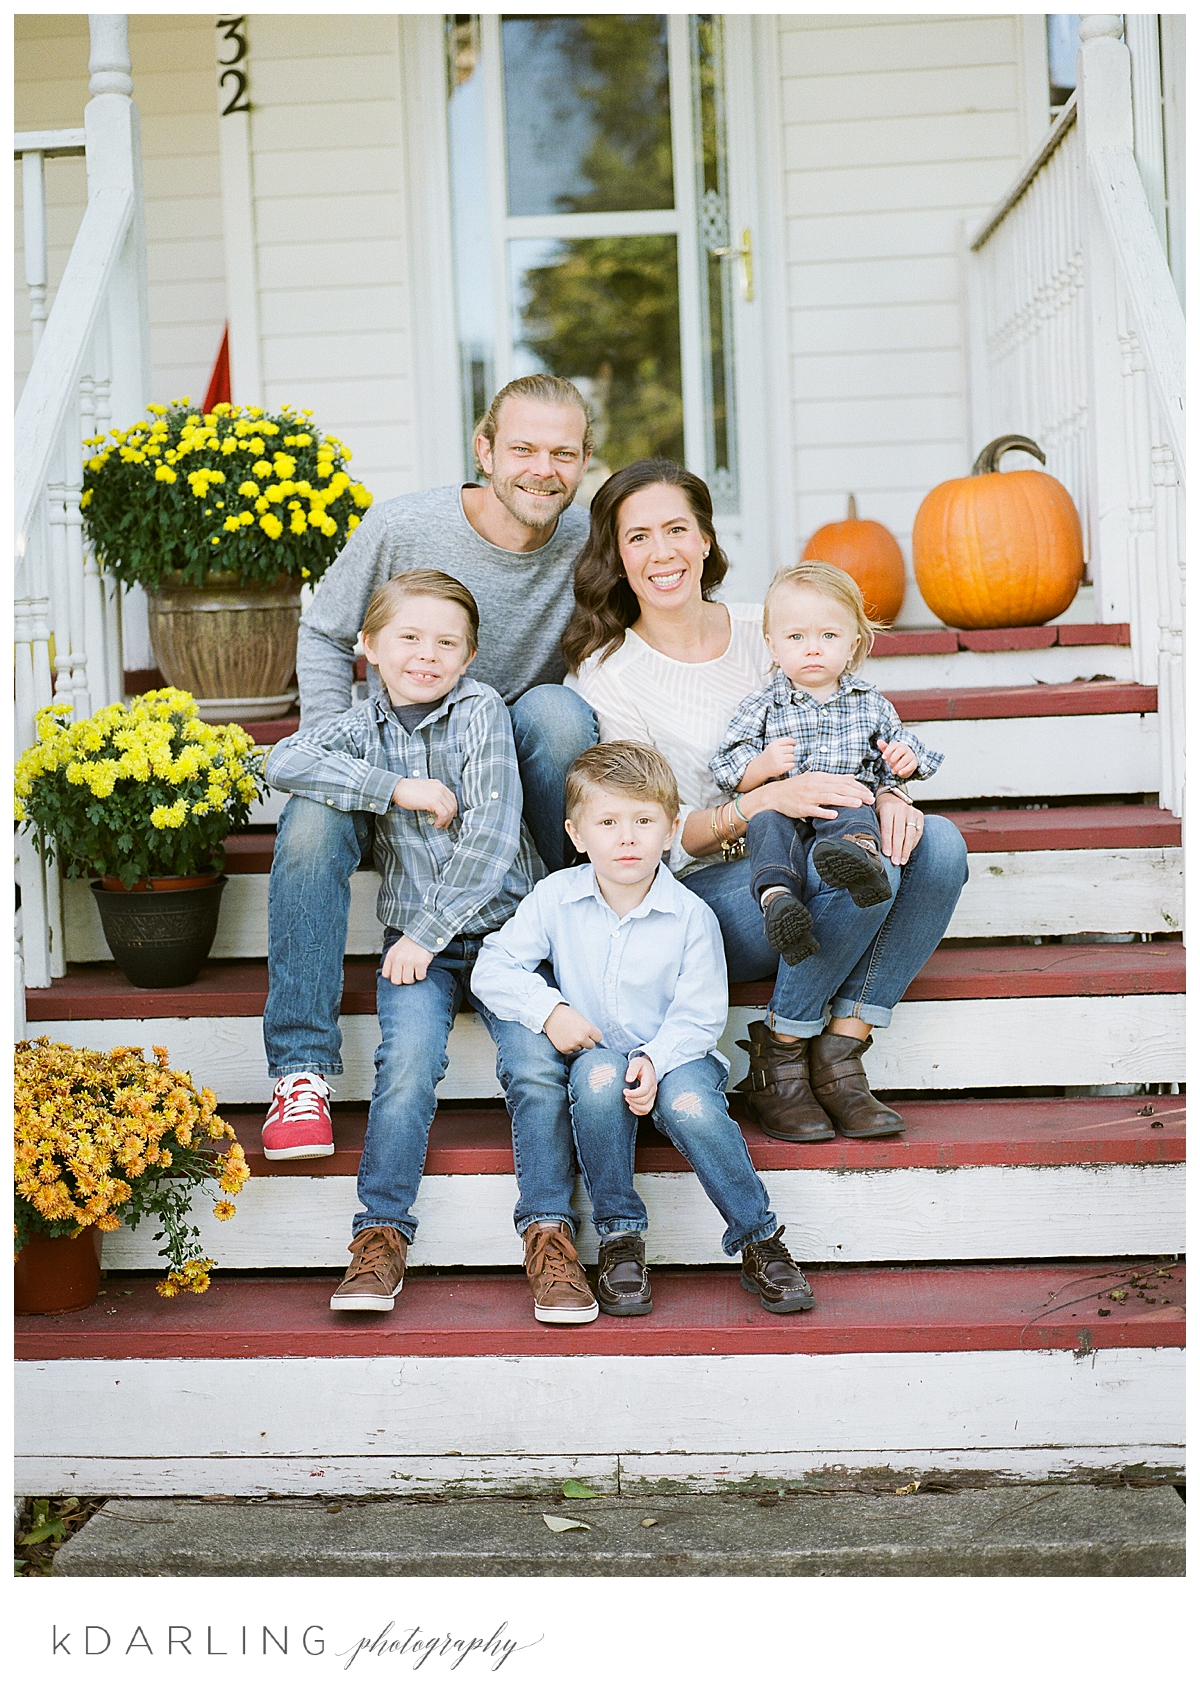 Lifestyle-family-photography-in-home-children-brothers-onarga-central-il_0014.jpg